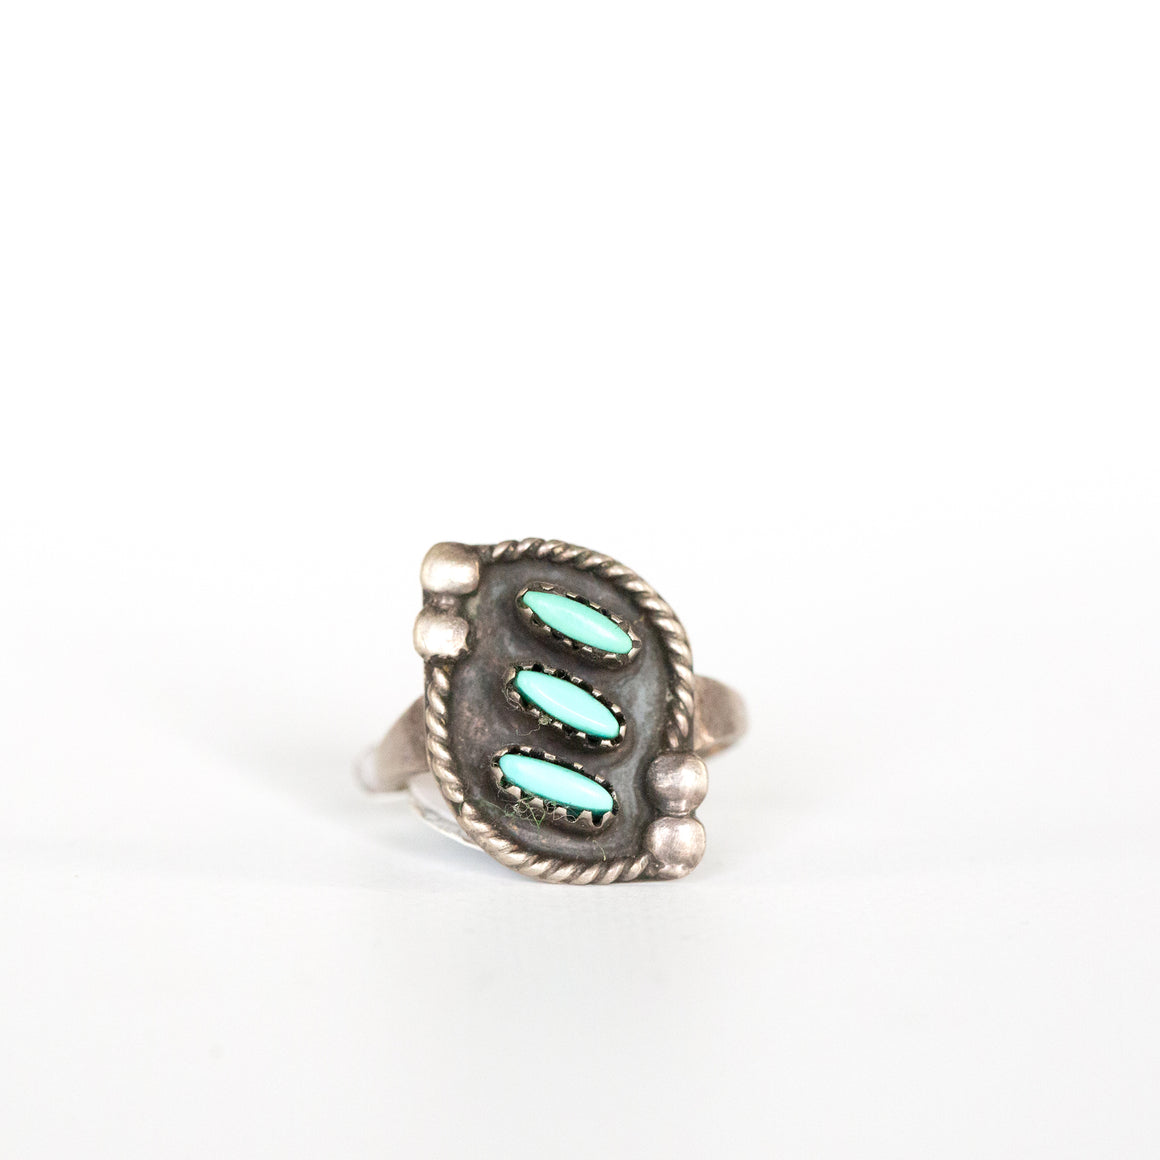 VINTAGE JEWELRY | MINI NEEDLEPOINT TURQUOISE STERLING RING (SIZE 6.5)